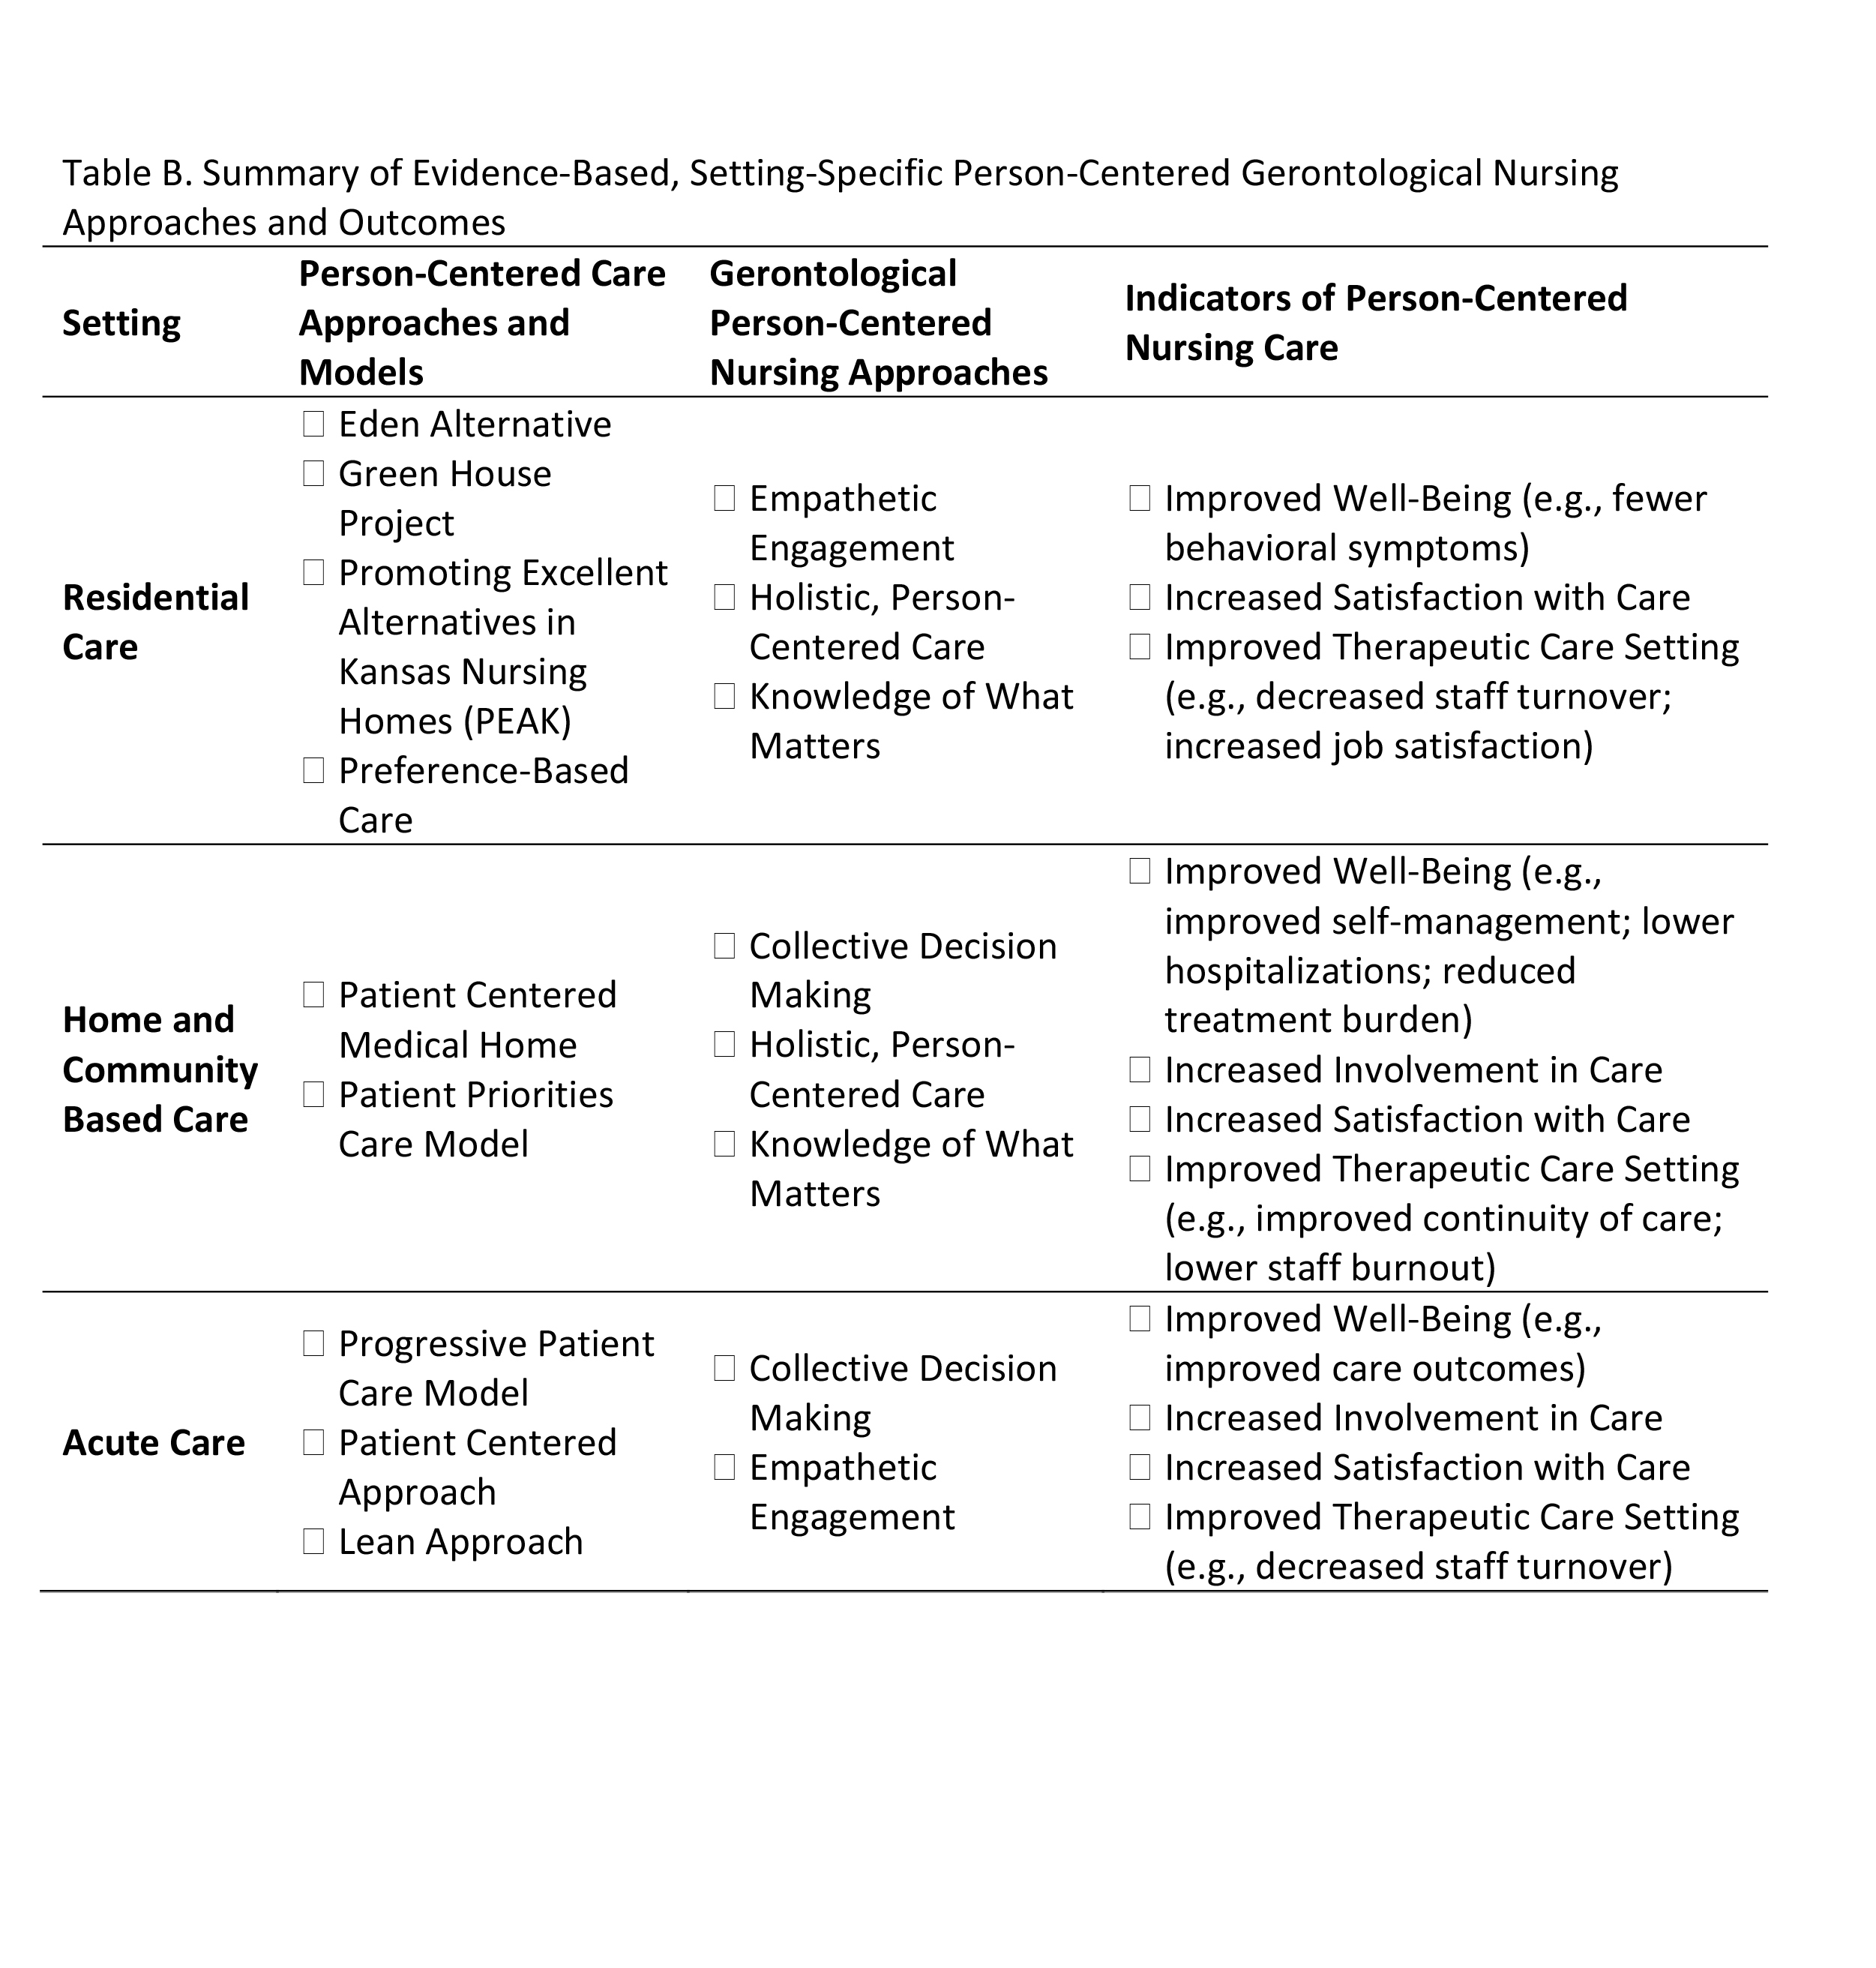 Summary of Evidence-Based, Setting-Specific Person-Centered Gerontological Nursing Approaches and Outcomes